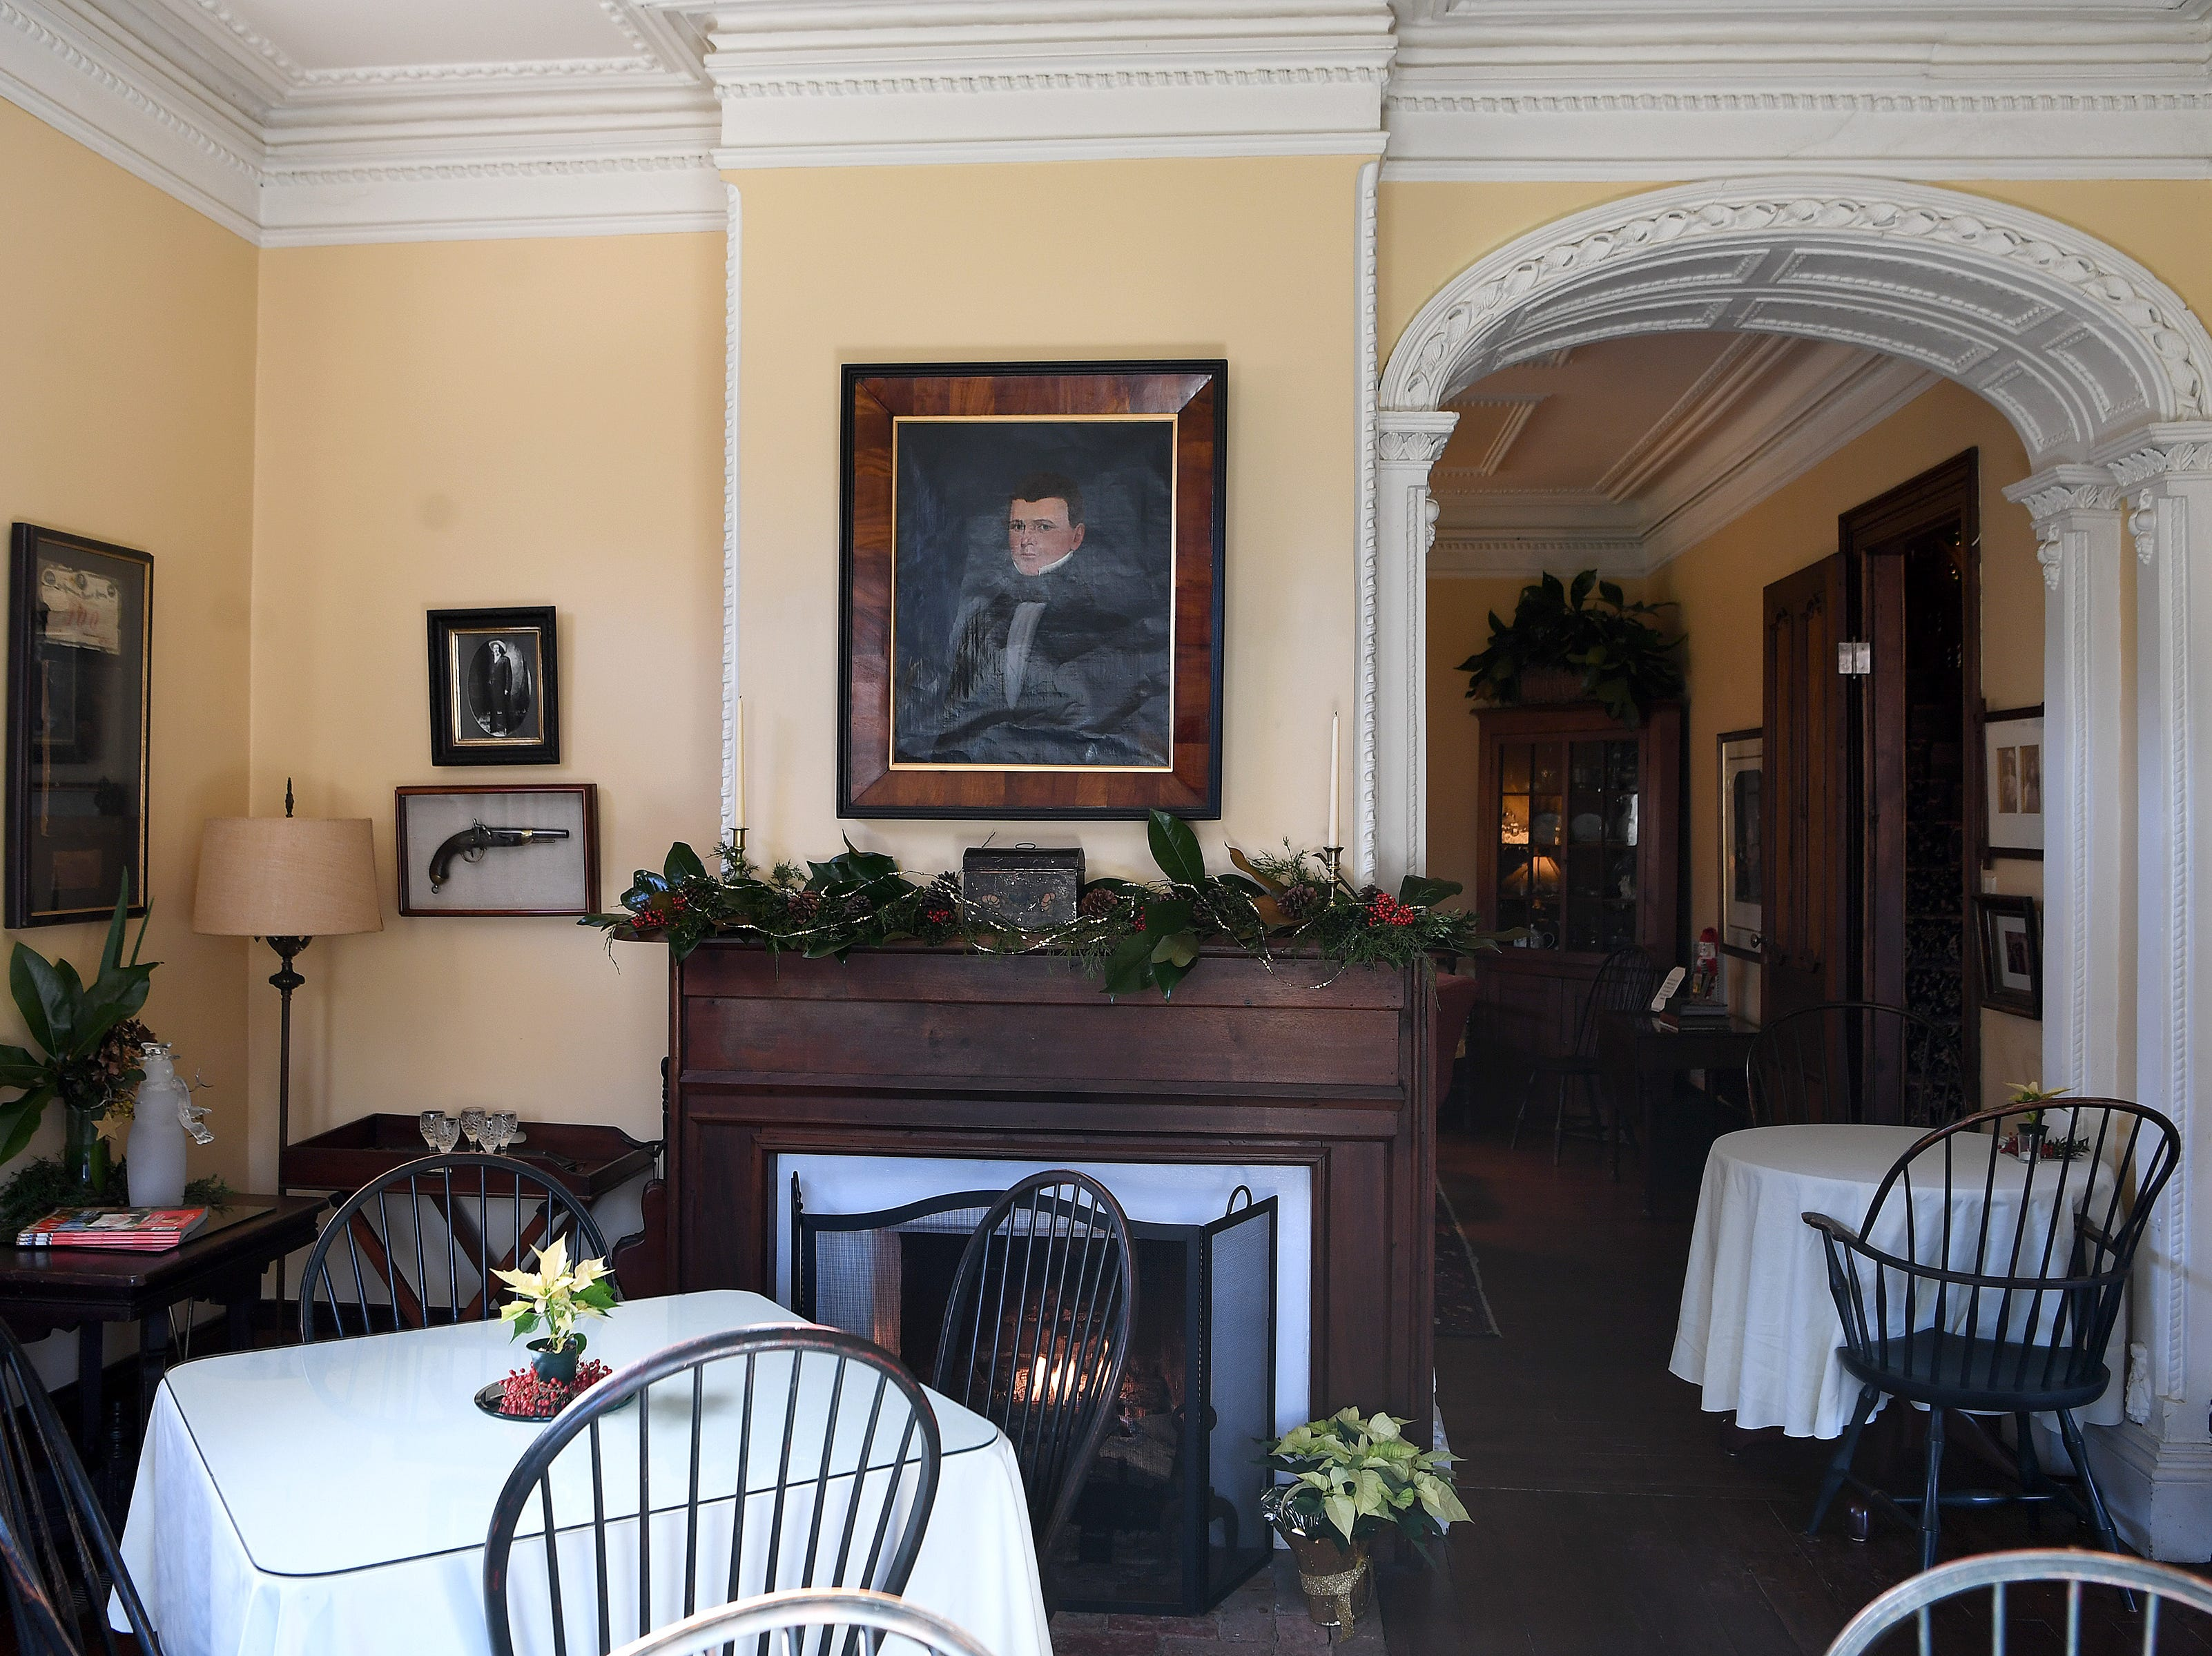 The Mountain Magnolia Inn in Hot Springs also functions as a restaurant several nights a week allowing visitors to enjoy the historic house without staying the night.